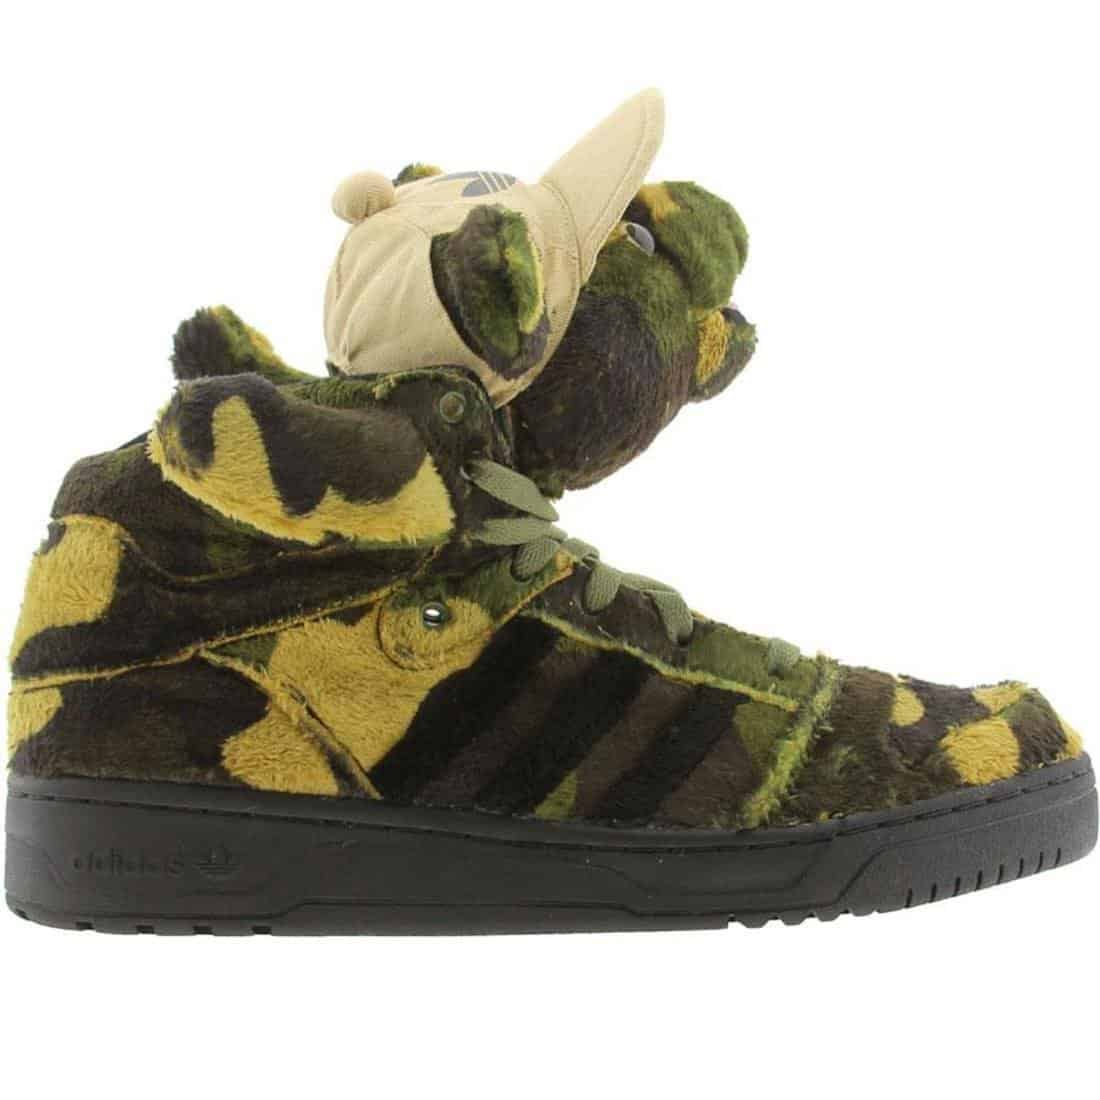 Adidas Jeremy Scott Camo Bear Sneakers Cool Stuff to Buy for Him